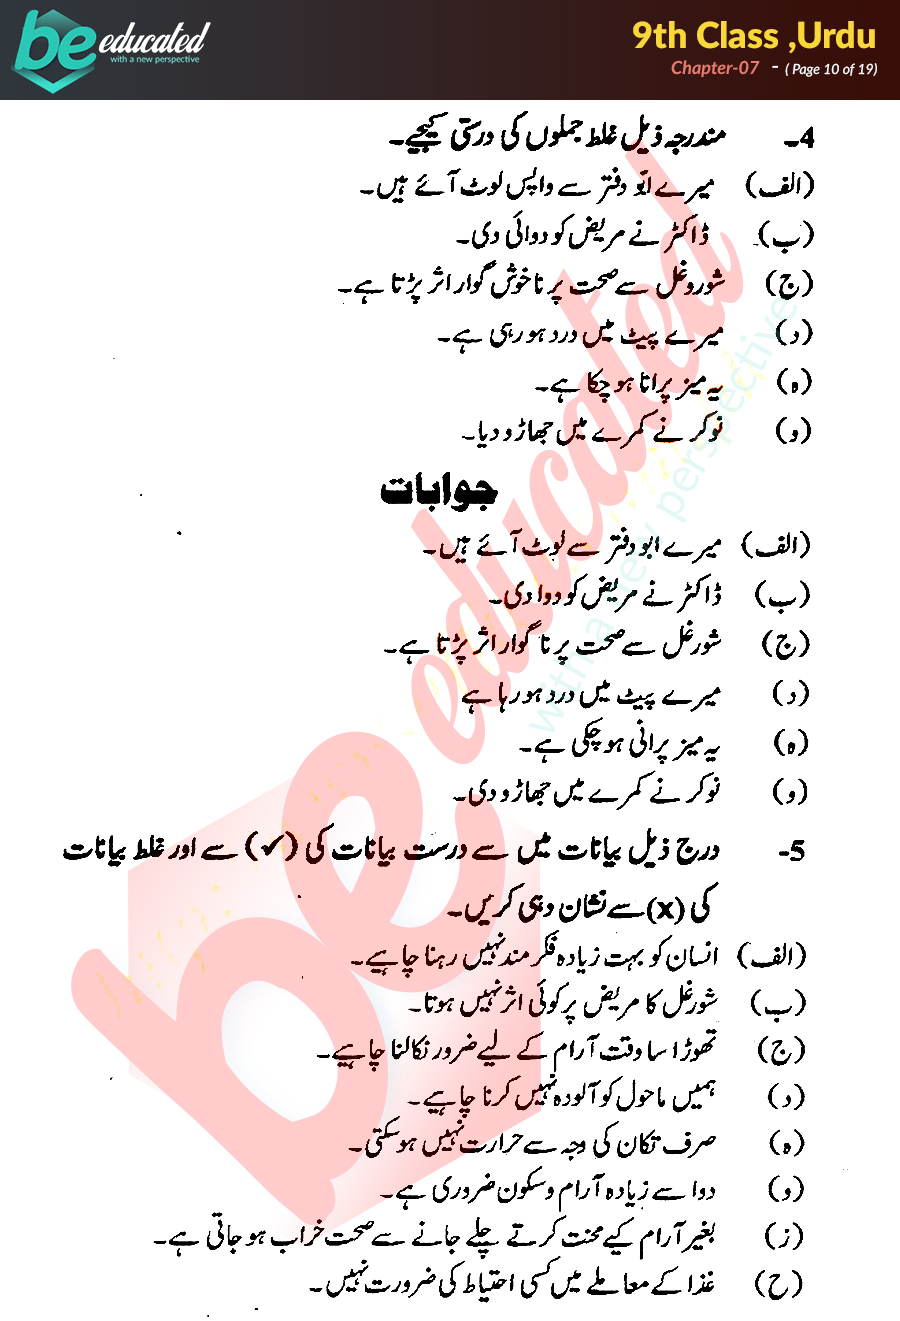 Chapter 7 Urdu 9th Class Notes - Matric Part 1 Notes